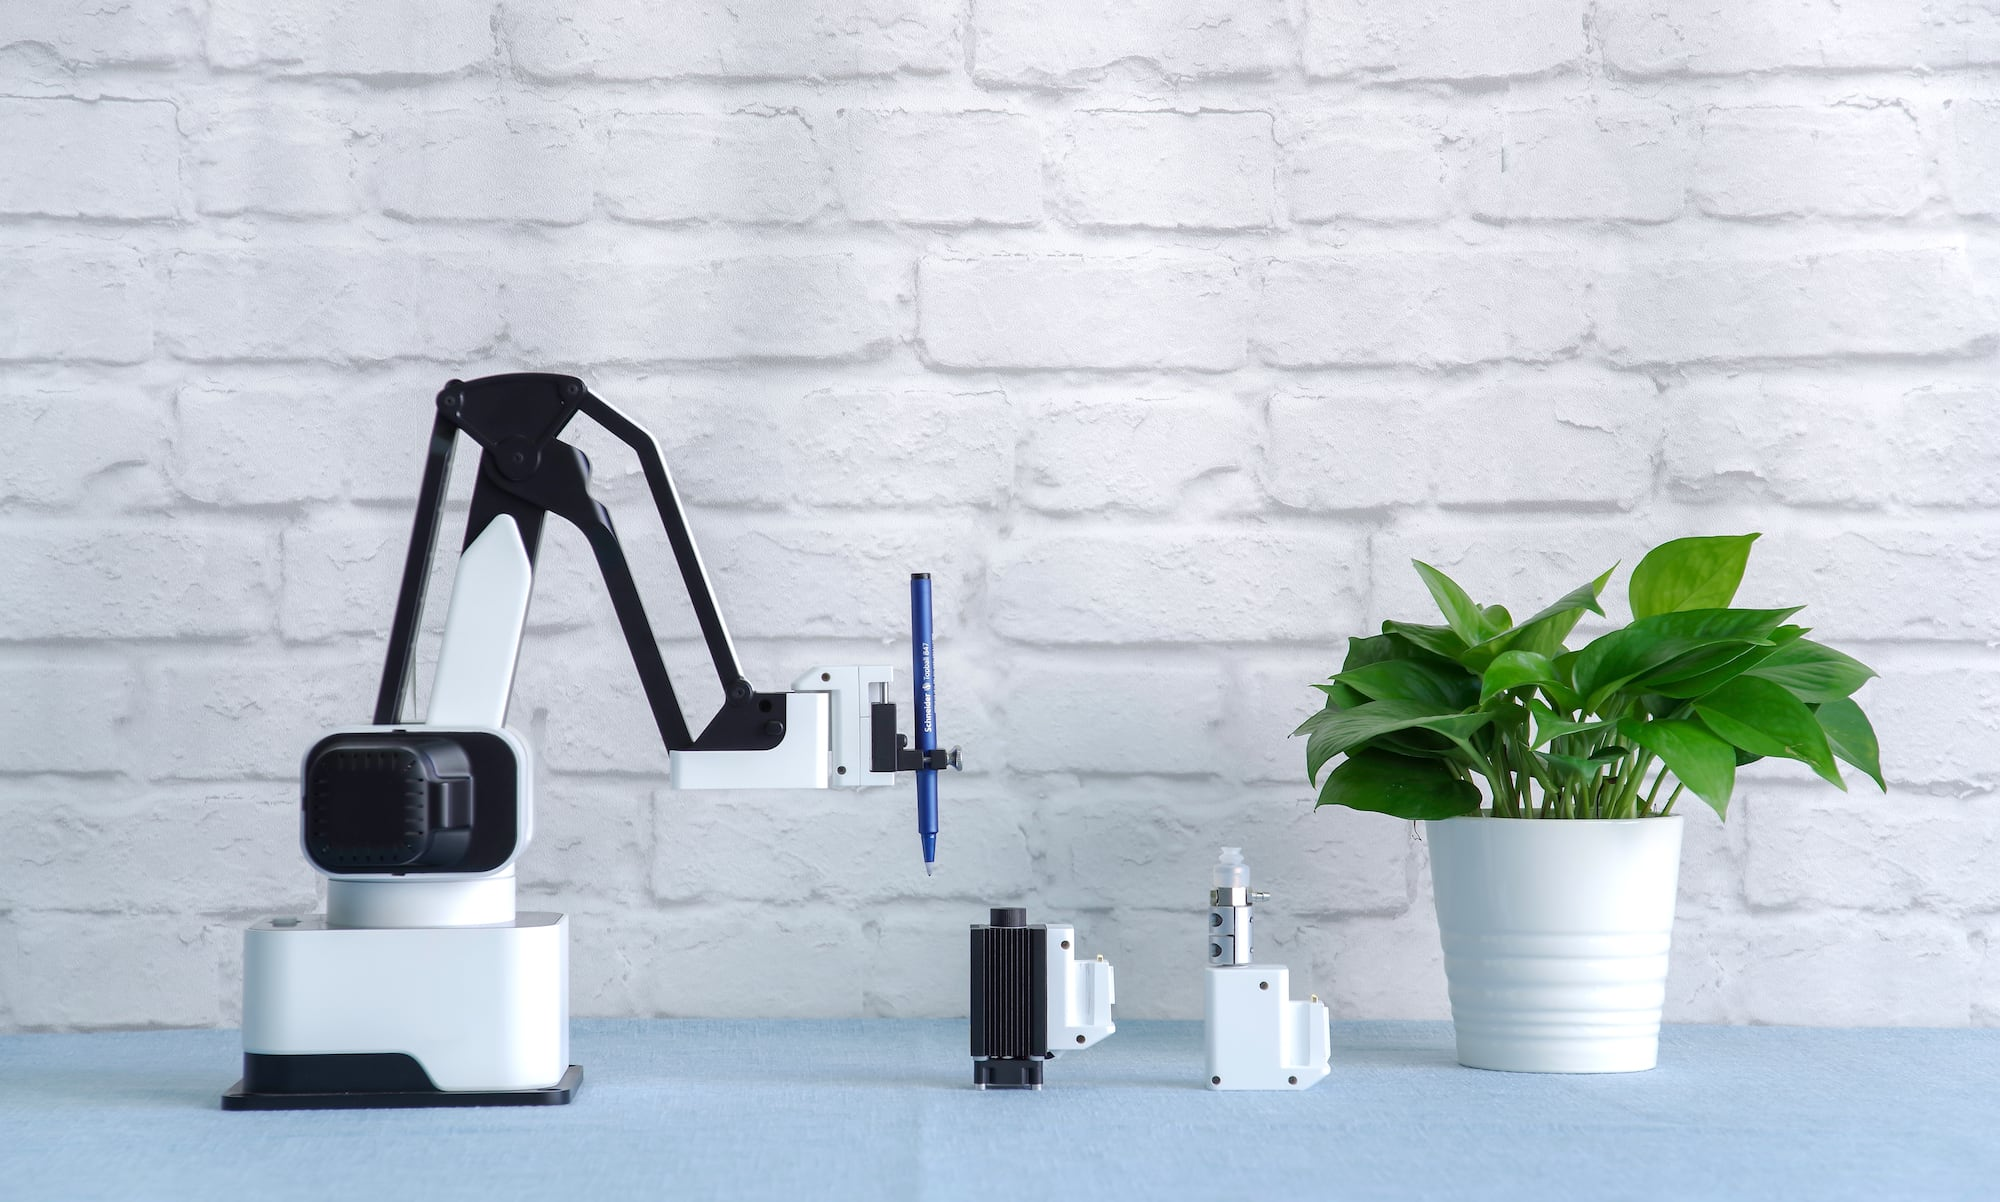 Meet Rotrics—a modular all-in-one desktop robot arm